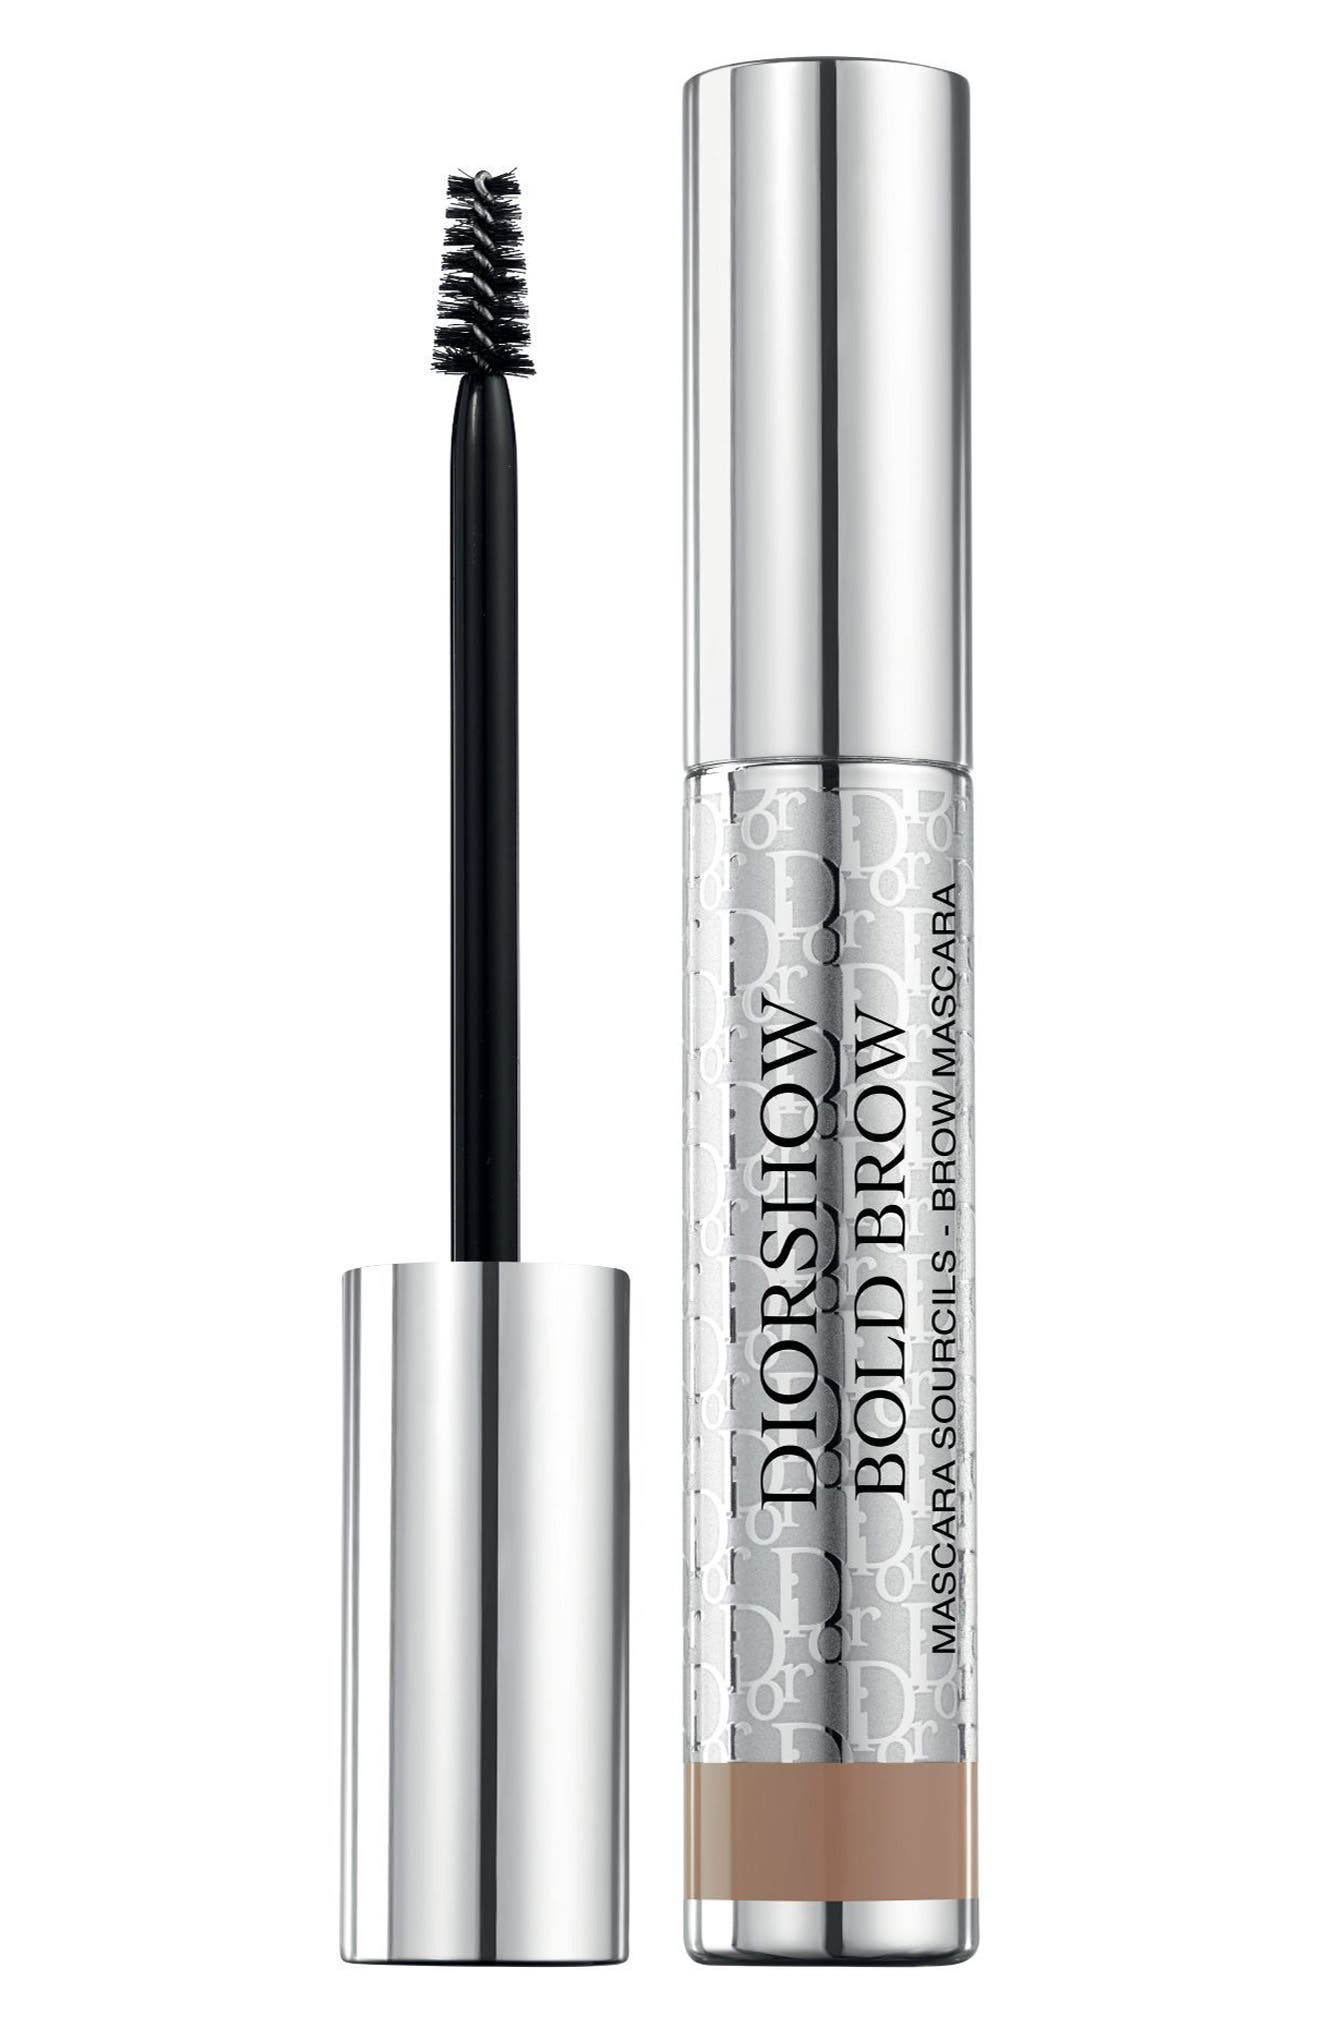 Dior Diorshow Bold Brow Instant Volumizing Brow Mascara - 011 Light